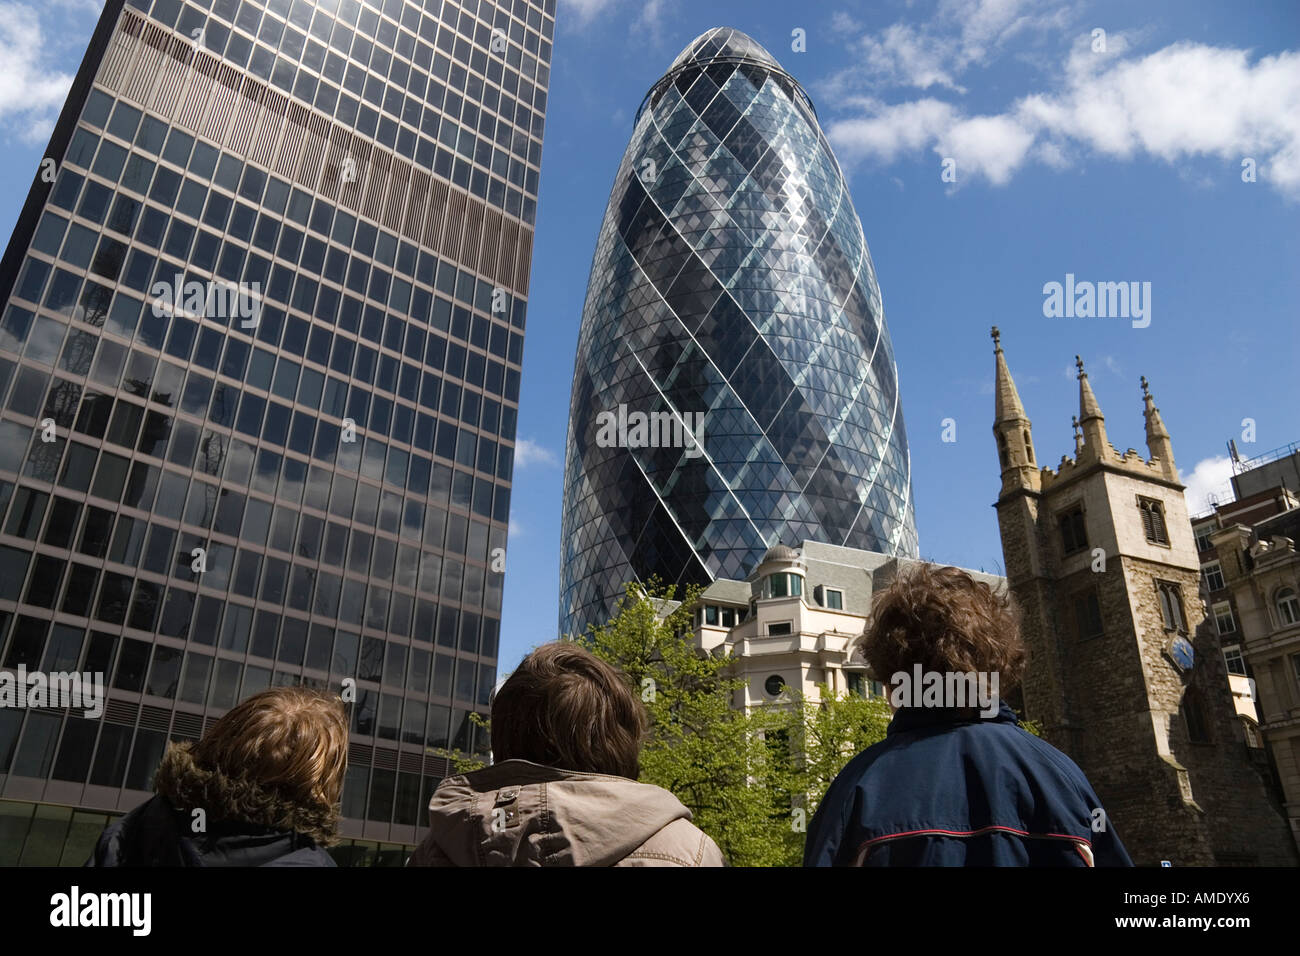 stock photo three boys looking up at the gherkin building in the city of london uk contrasting styles